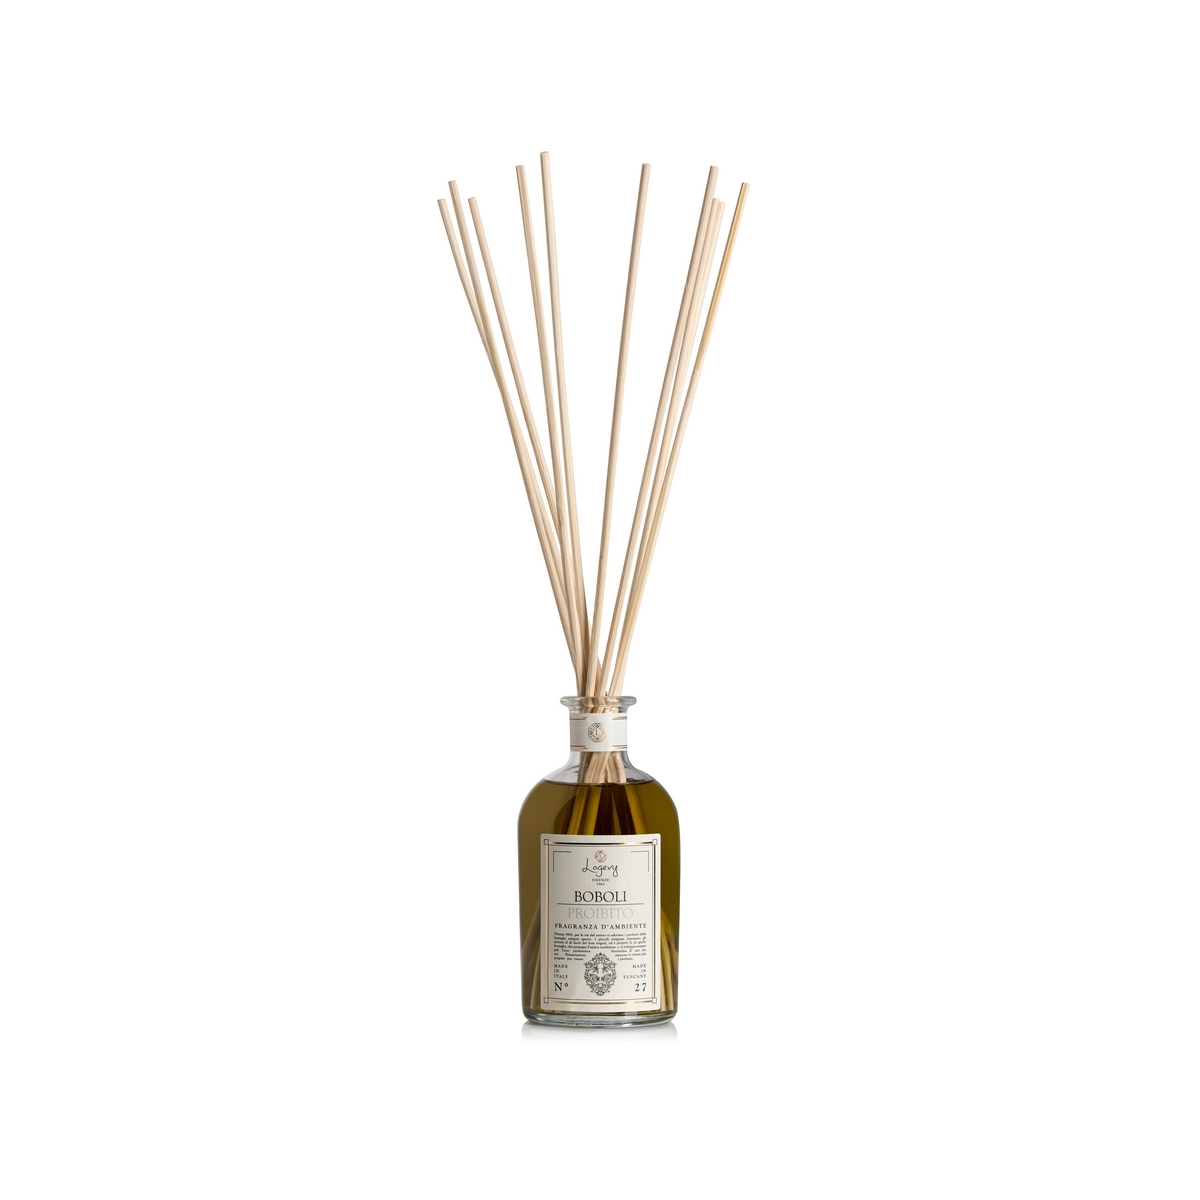 Perfumer for Environments 500 ml for the Wellness of the Person and the House - Boboli Prohibited